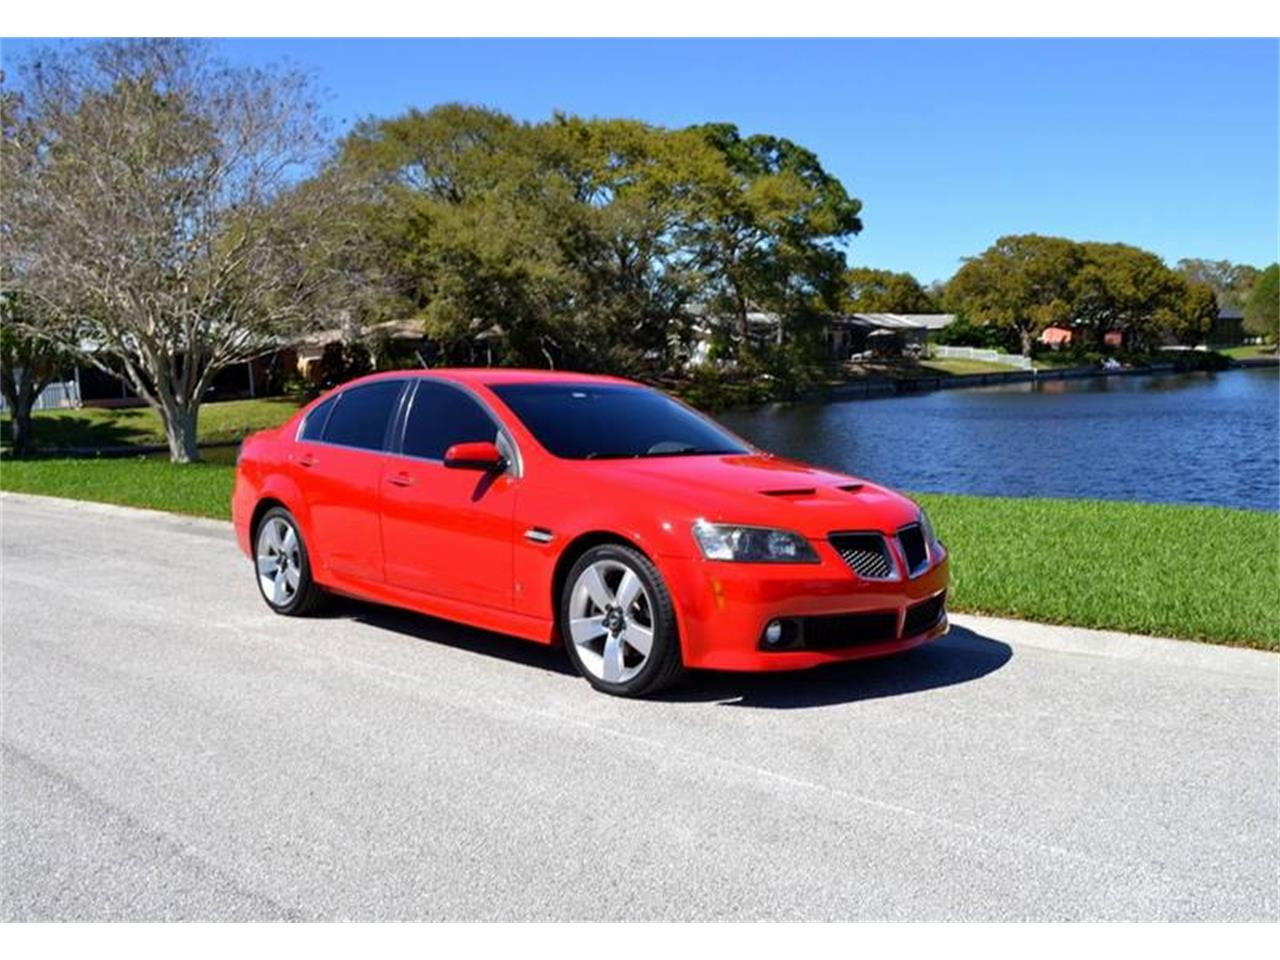 2009 Pontiac G8 for sale in Clearwater, FL – photo 5